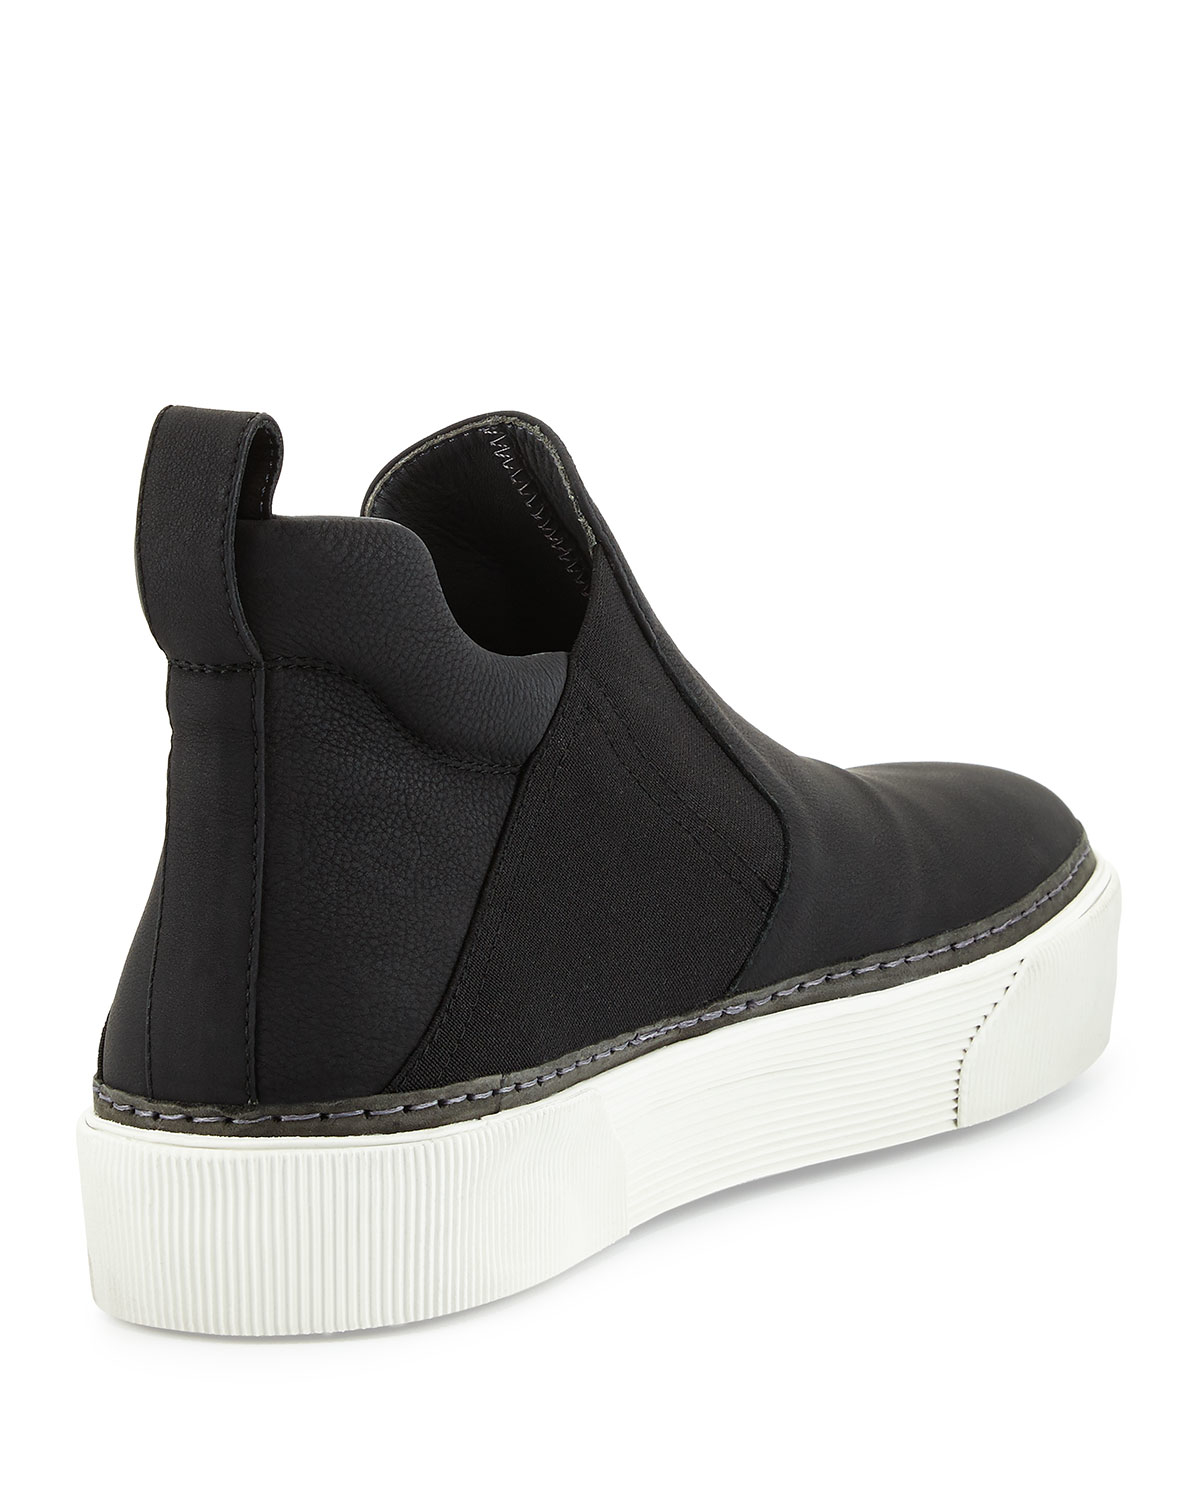 LanvinSneakers slip on leather 6bp6IoUtth